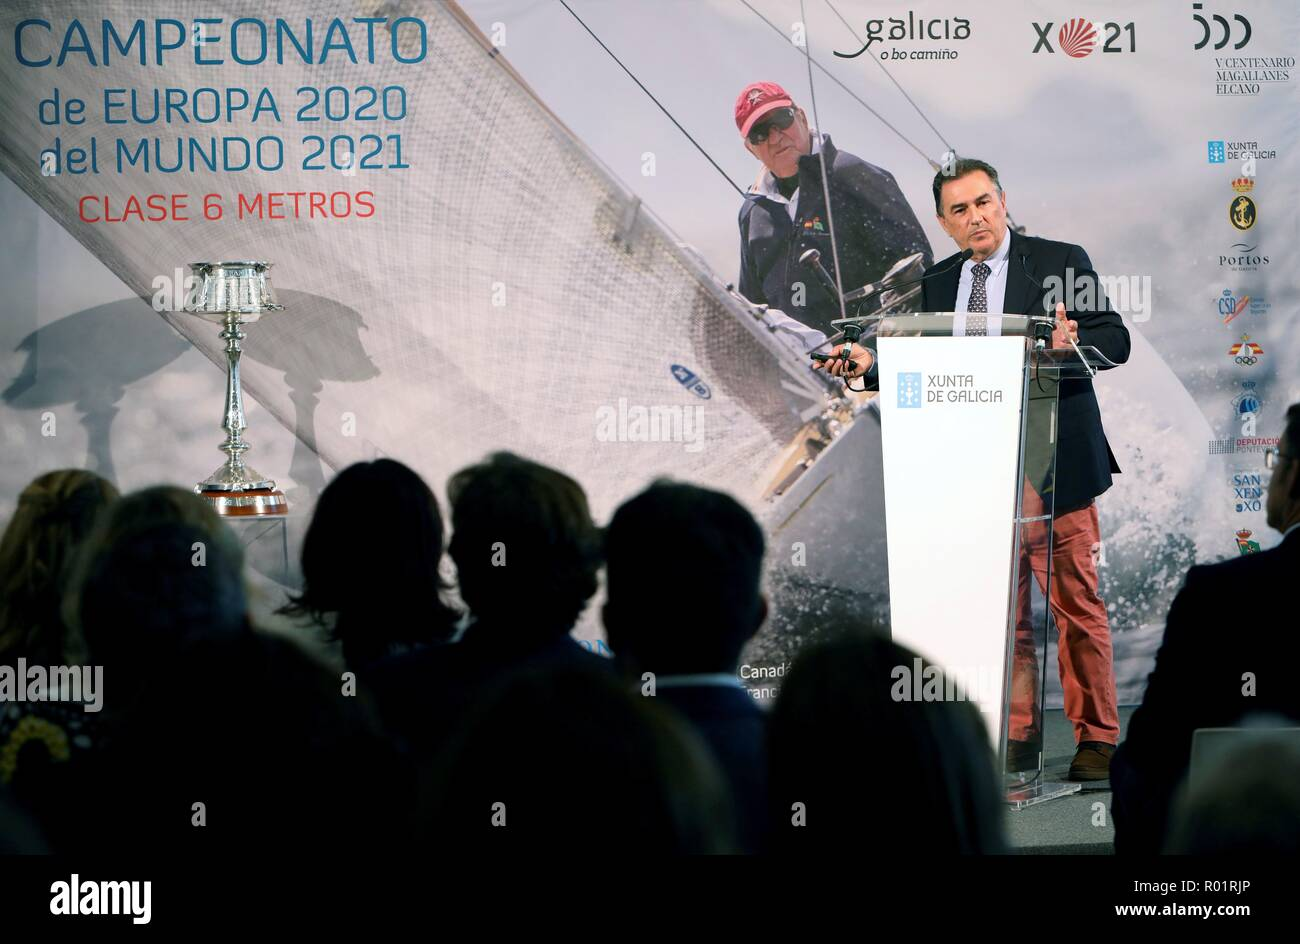 Spanish yatchsman Pedro Campos speaks during the presentation of the City of Culture of Europe's Championships 2020 and the 2021 World Championships, in Santiago de Compostela, Galicia, Spain, 31 October 2018. EFE/Xoan Rey - Stock Image